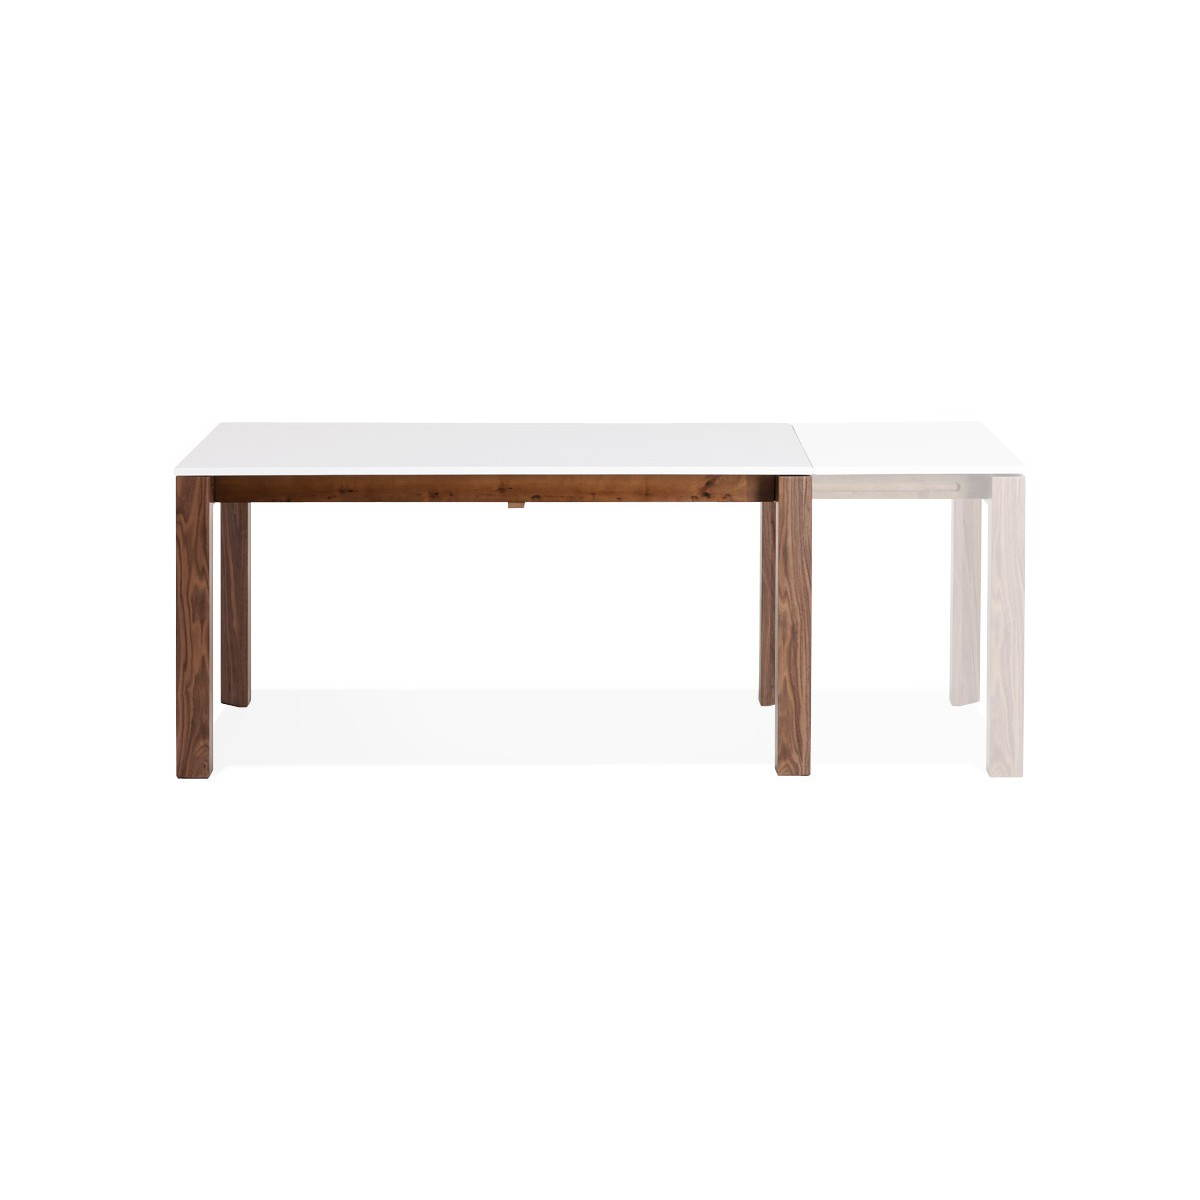 Table design rectangulaire avec rallonge loulou en bois blanc english eng - Table bois design contemporain ...